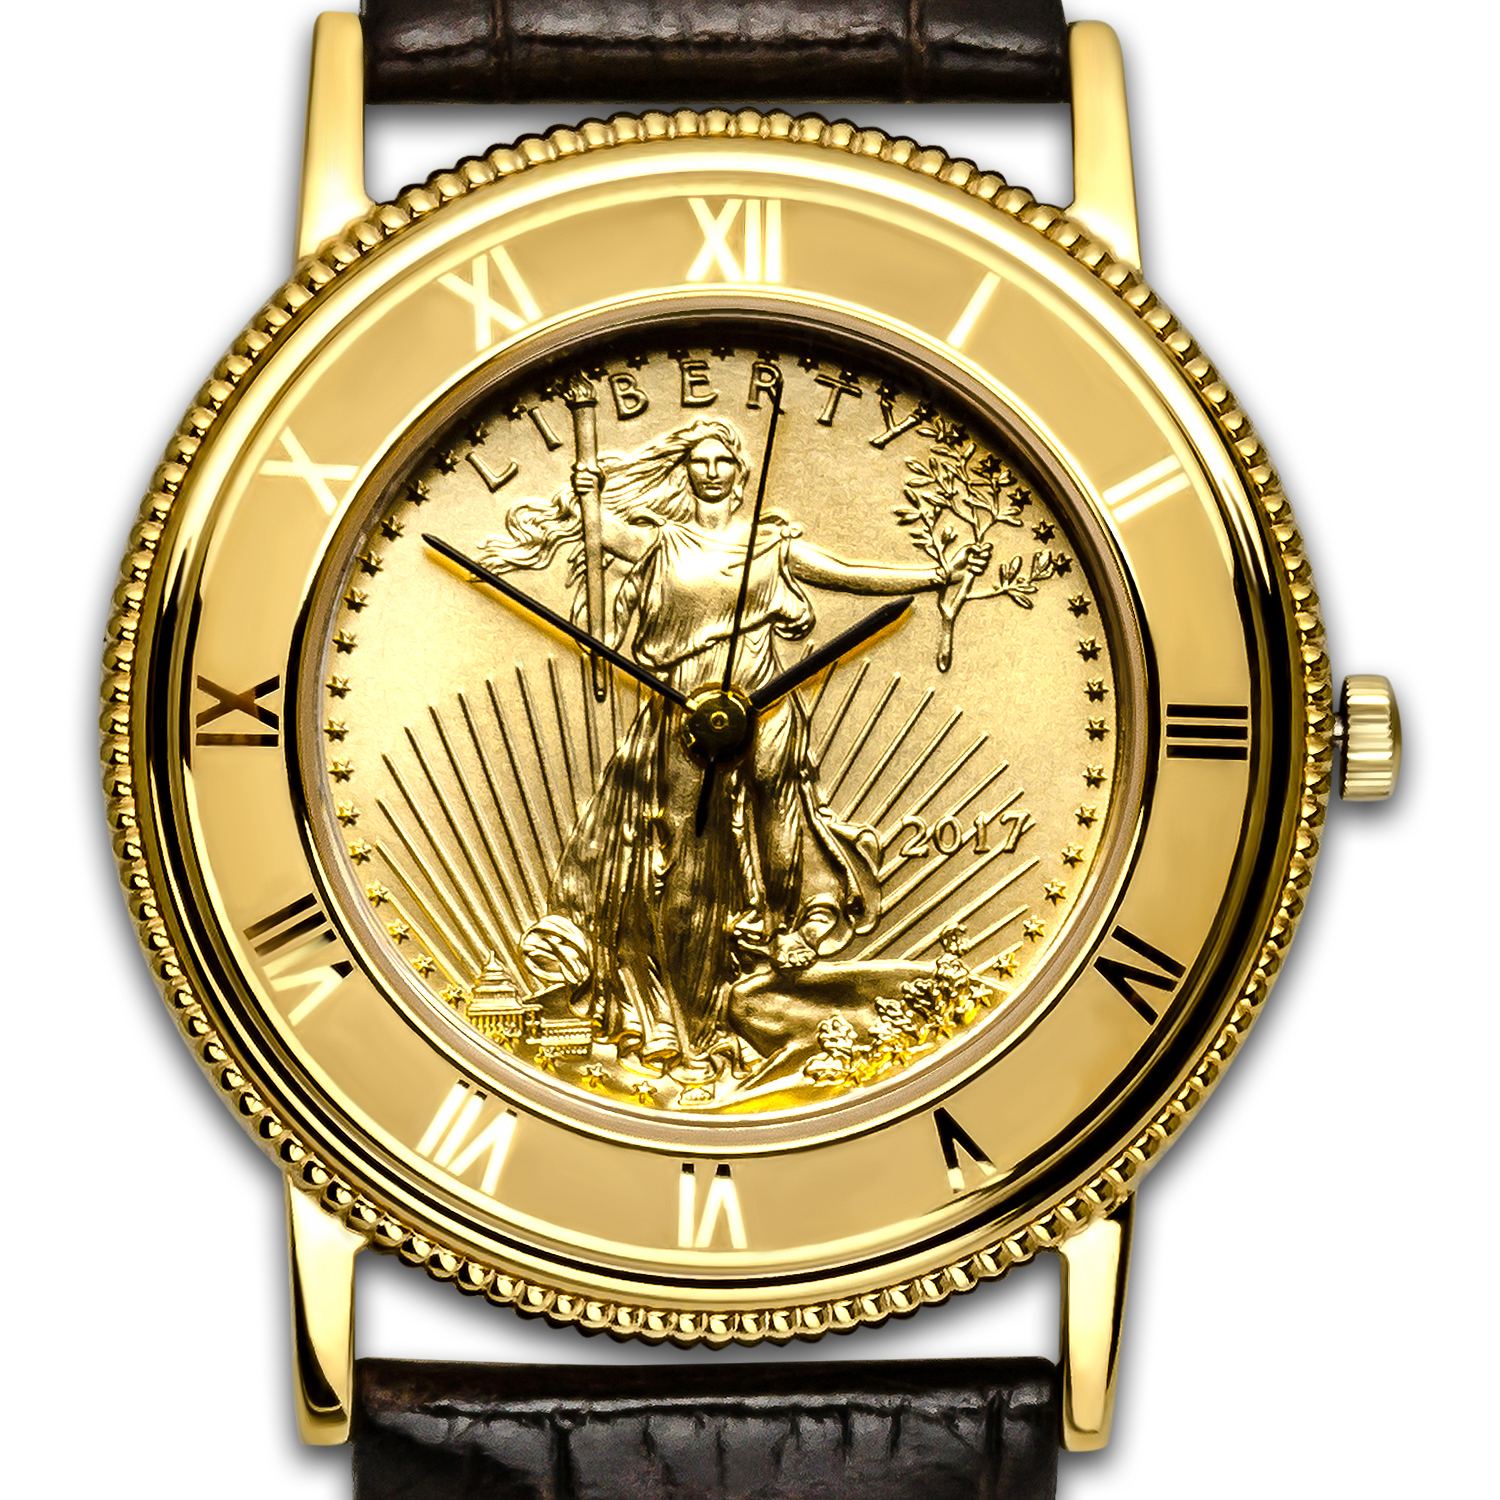 2017 1/2 oz Gold American Eagle Leather Band Watch